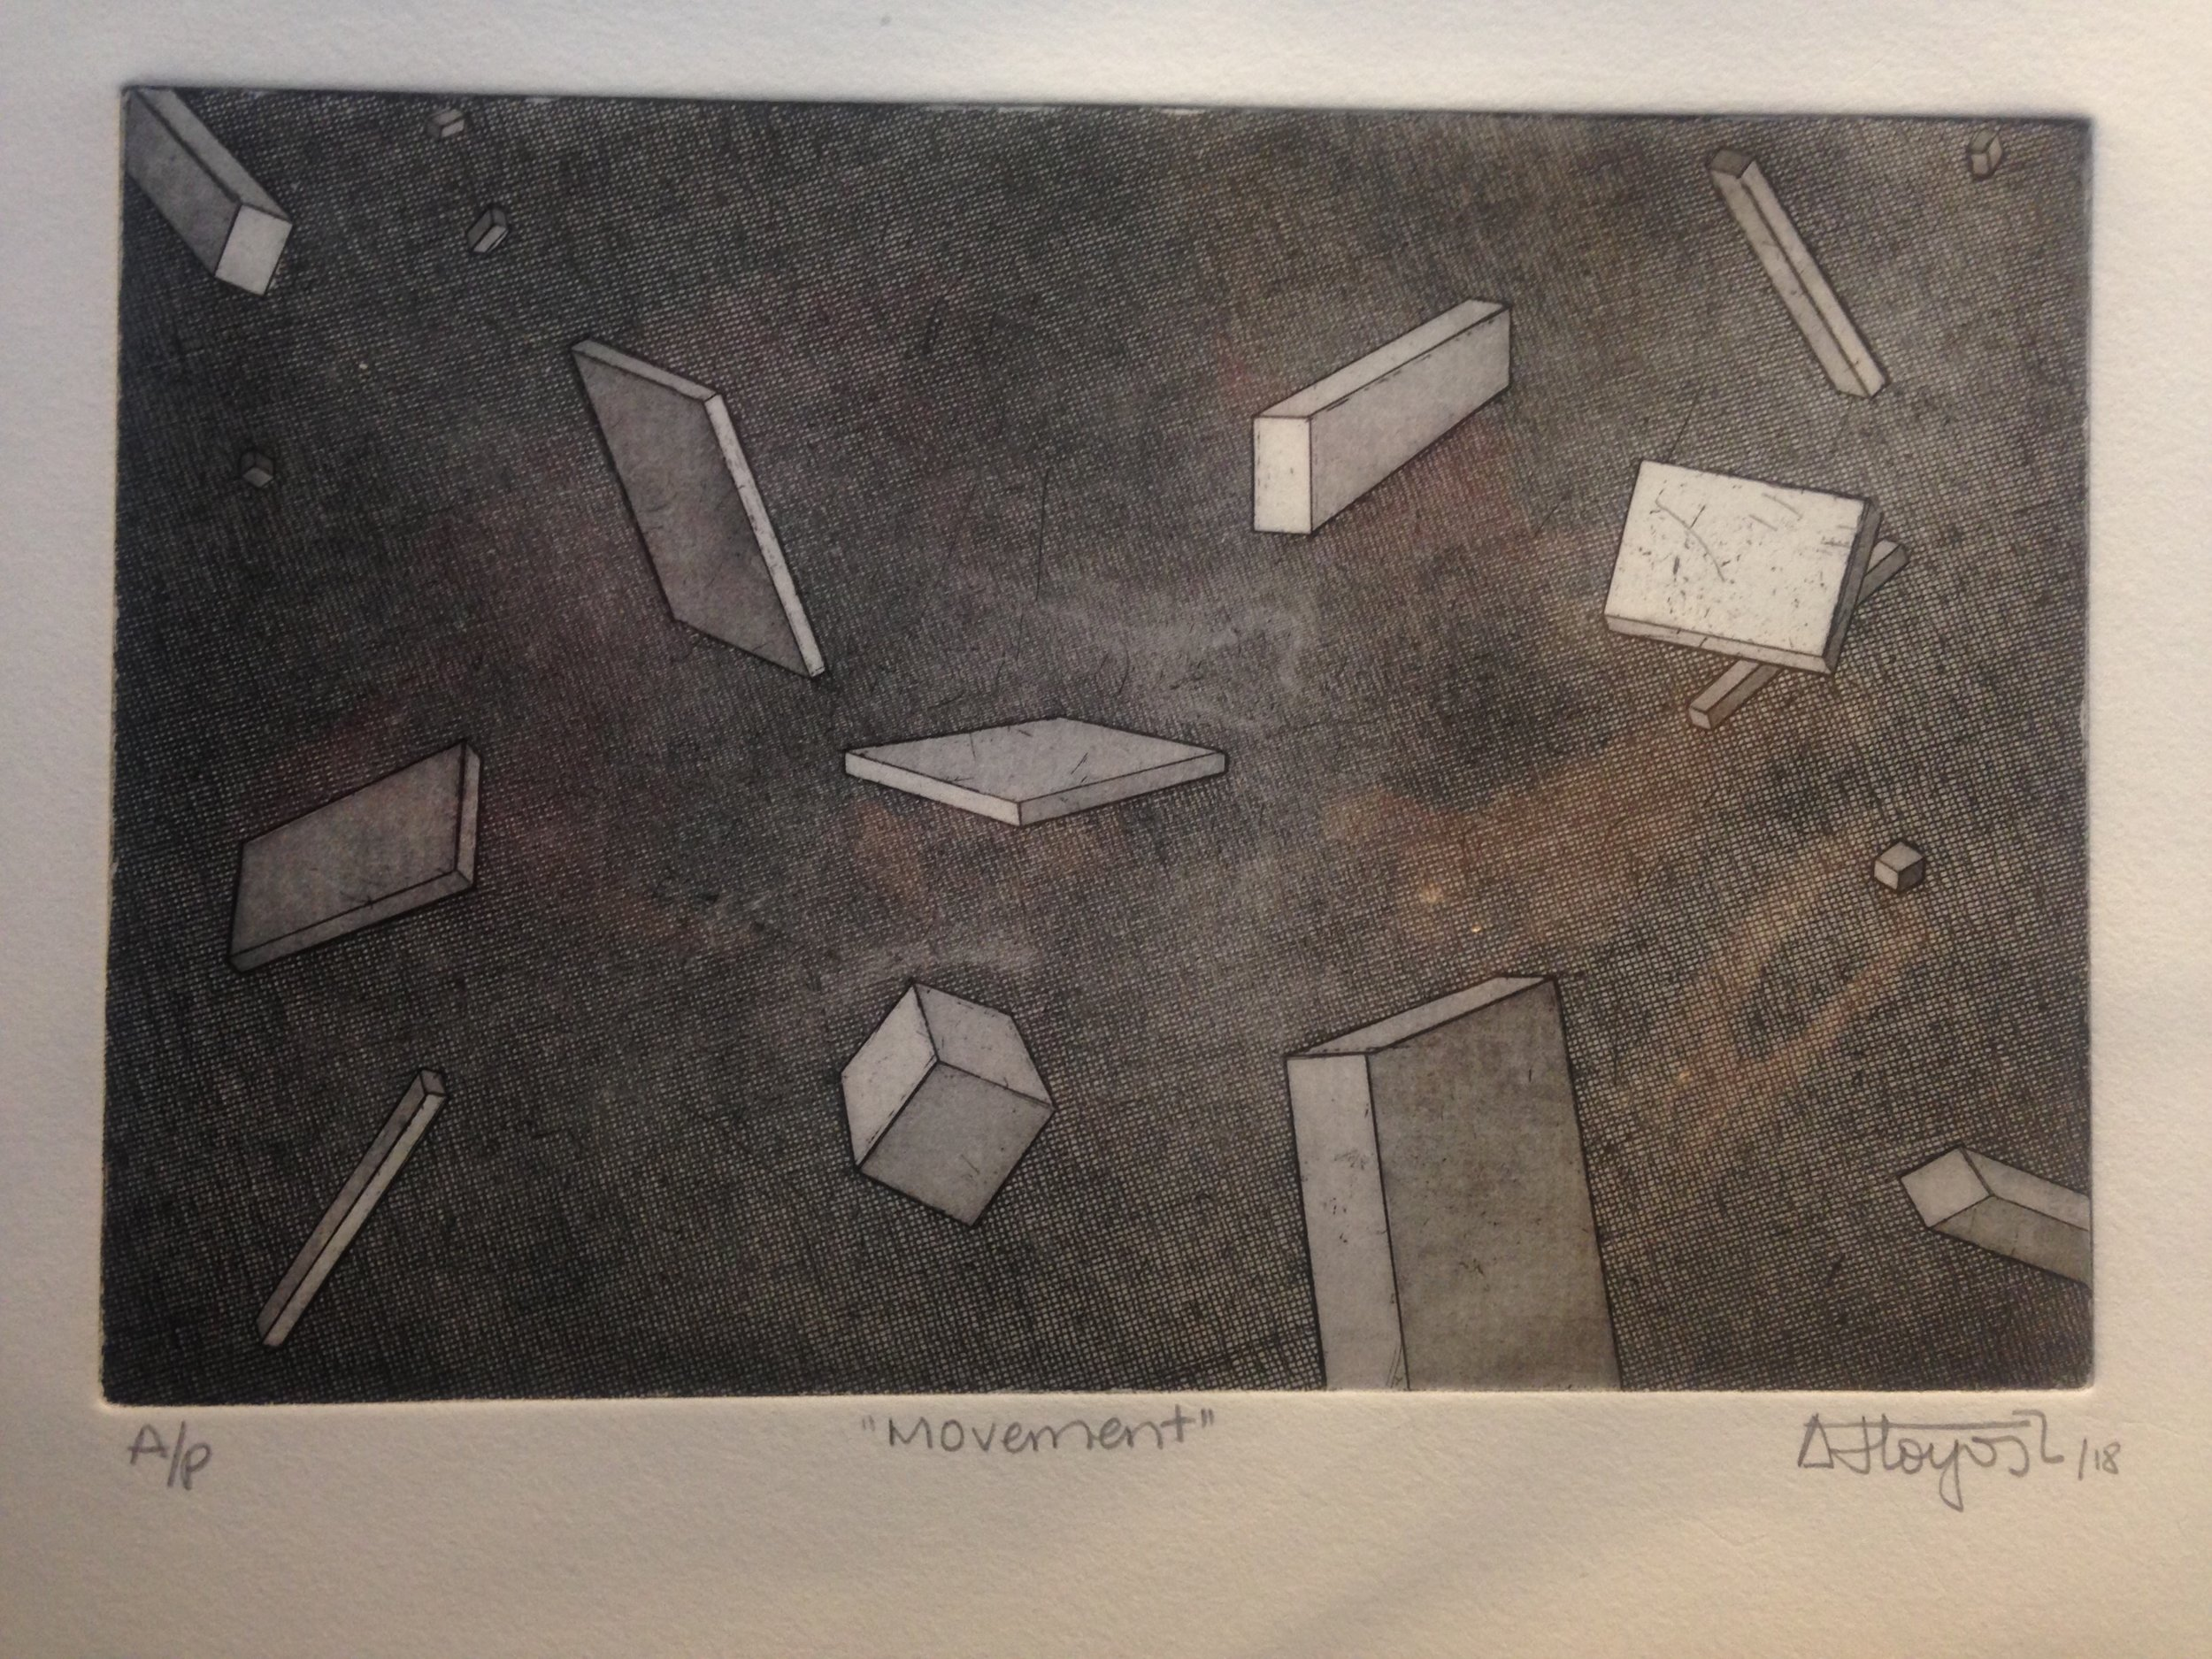 #81 Andres Hoyos  Movement  Print from etching, artist proof 11 x 15.5 in with matting, signed 2018